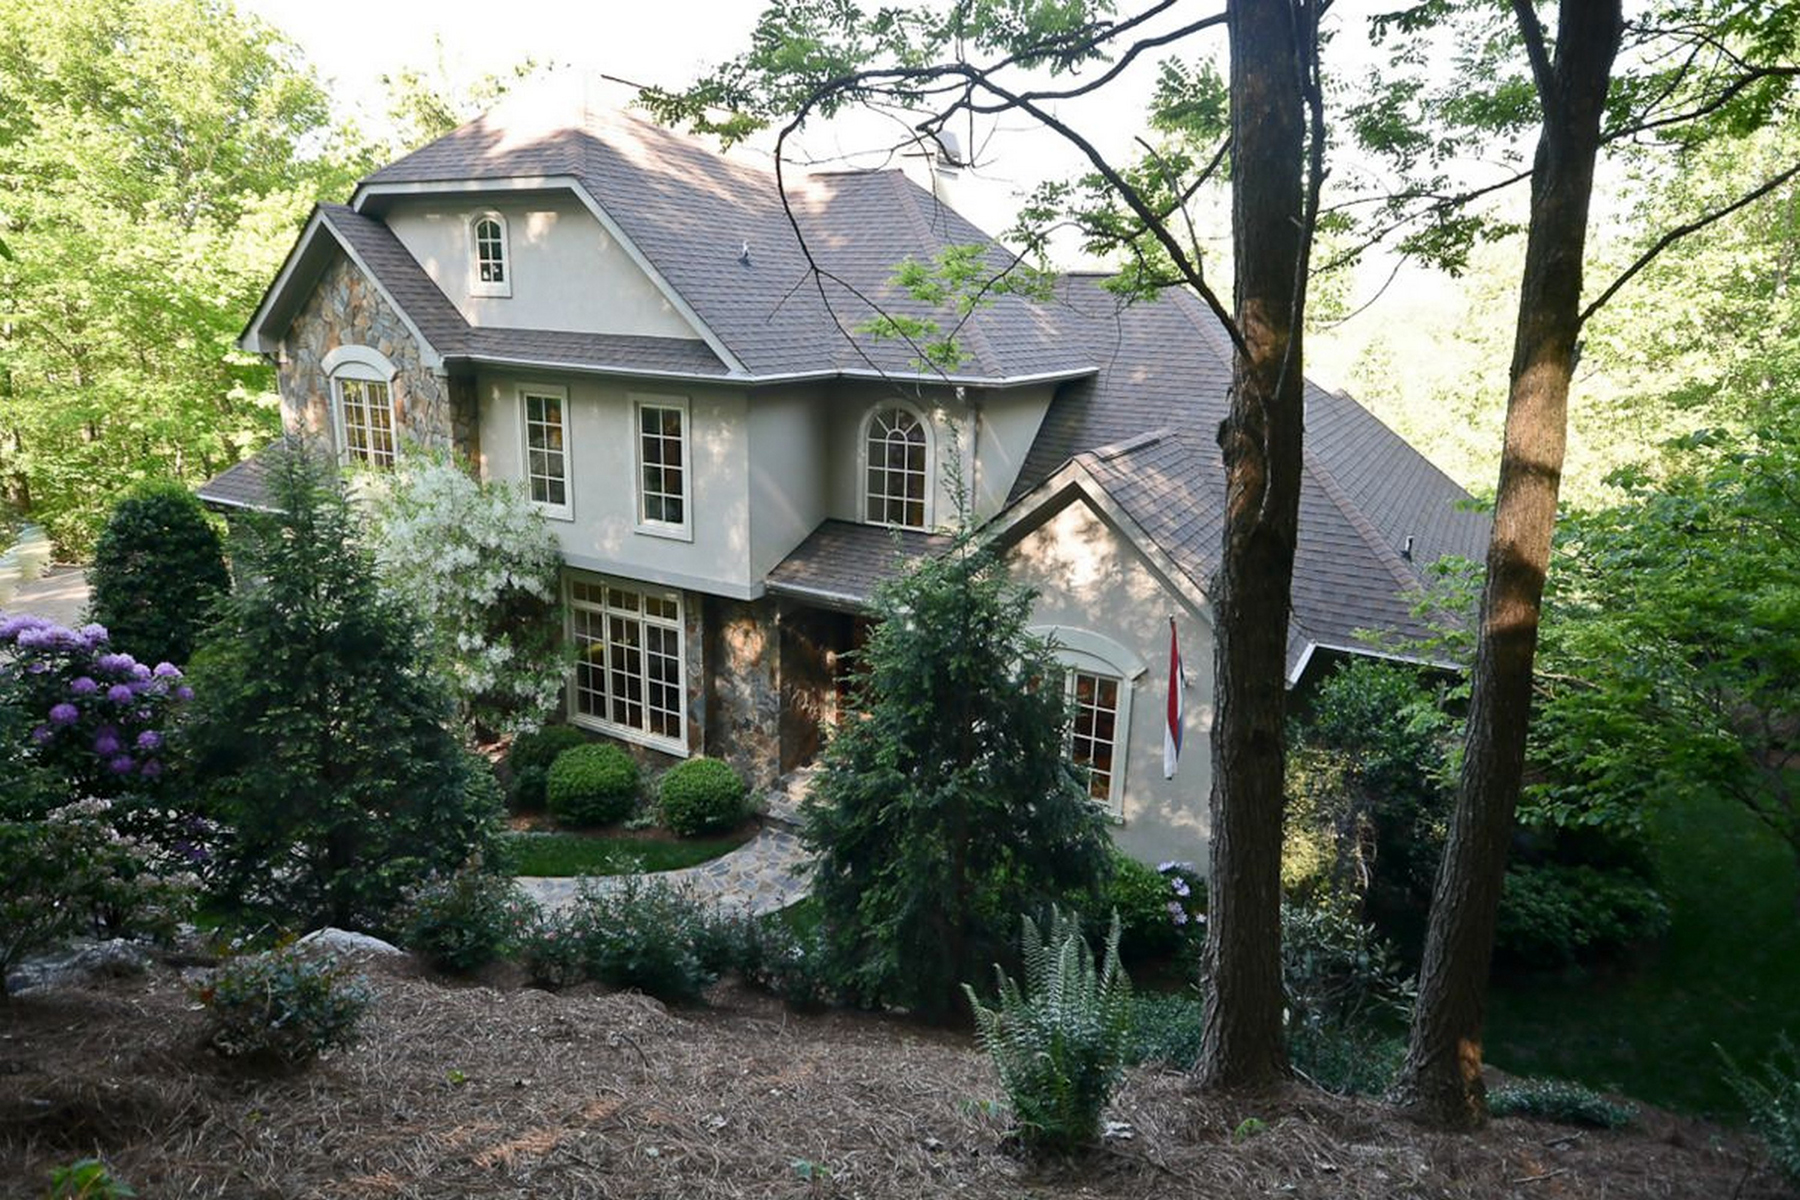 Single Family Home for Sale at CLIFFS VALLEY 921 High Knoll Way, Travelers Rest, South Carolina 29690 United States